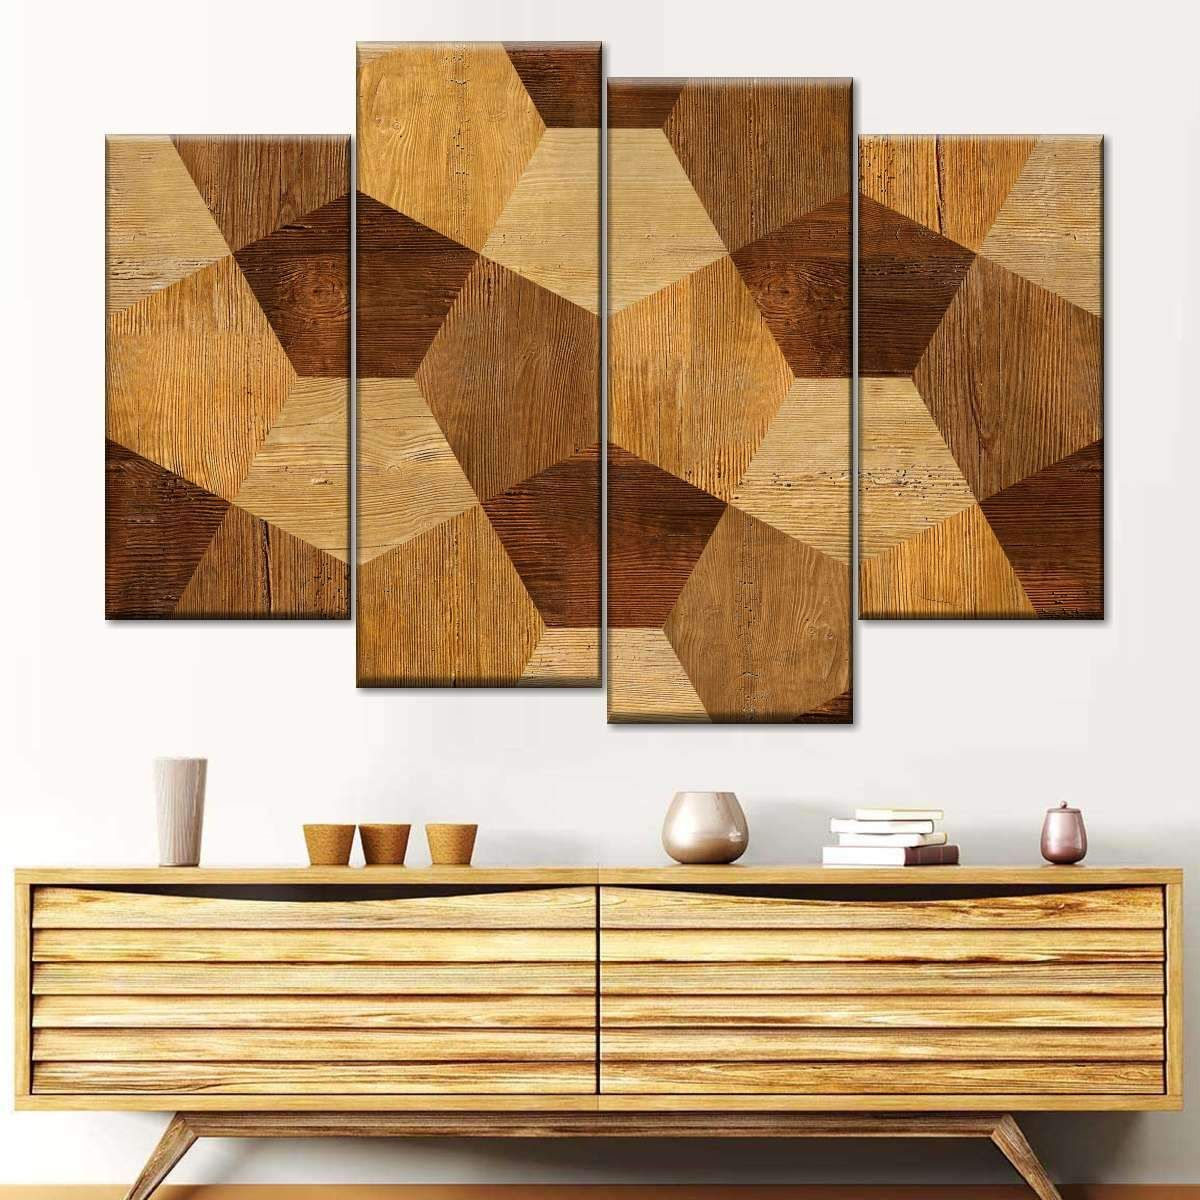 Abstract Wood Decor Multi Panel Canvas Wall Art In 2020 Canvas Wall Art Wood Decor Multi Panel Canvas